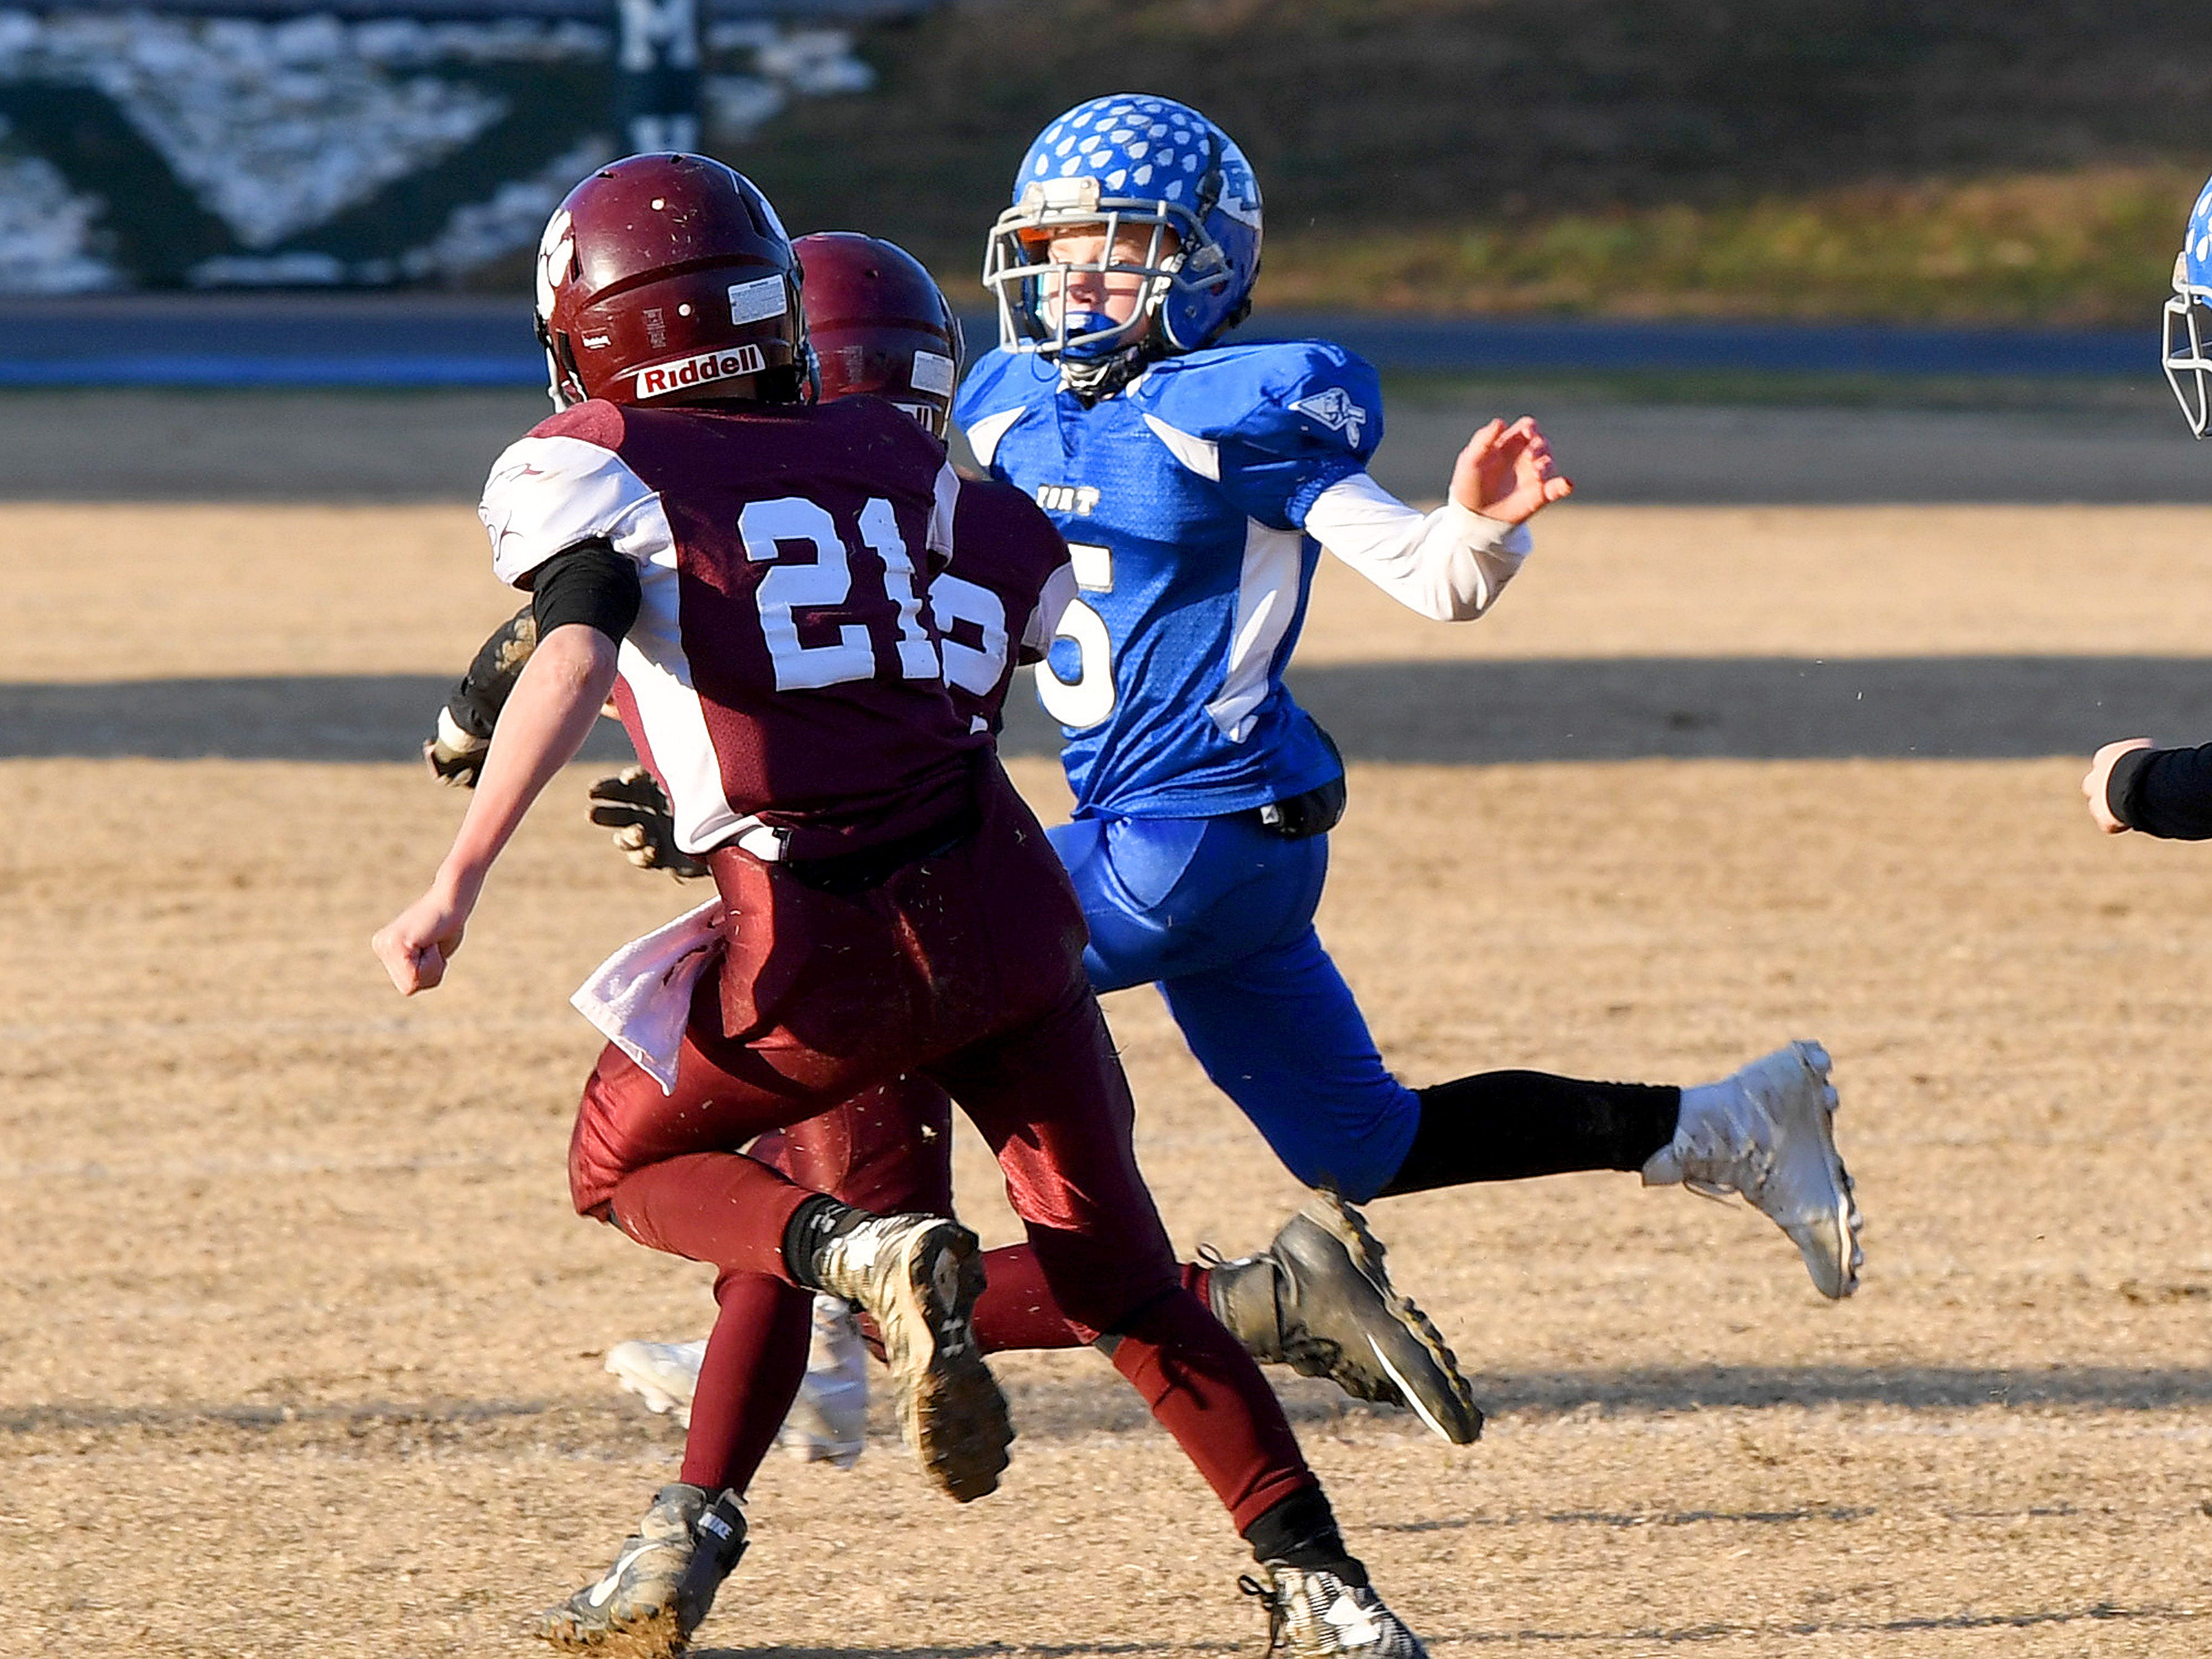 Fort Defiance's Trey Miller runs the ball to the side as Stuarts Draft's Landon Graber turns his way during the Augusta County Quarterback Club Juniors Super Bowl in Fishersville on Sunday, Nov. 11, 2018.  Fort Defiance beats Stuarts Draft, 13-12.